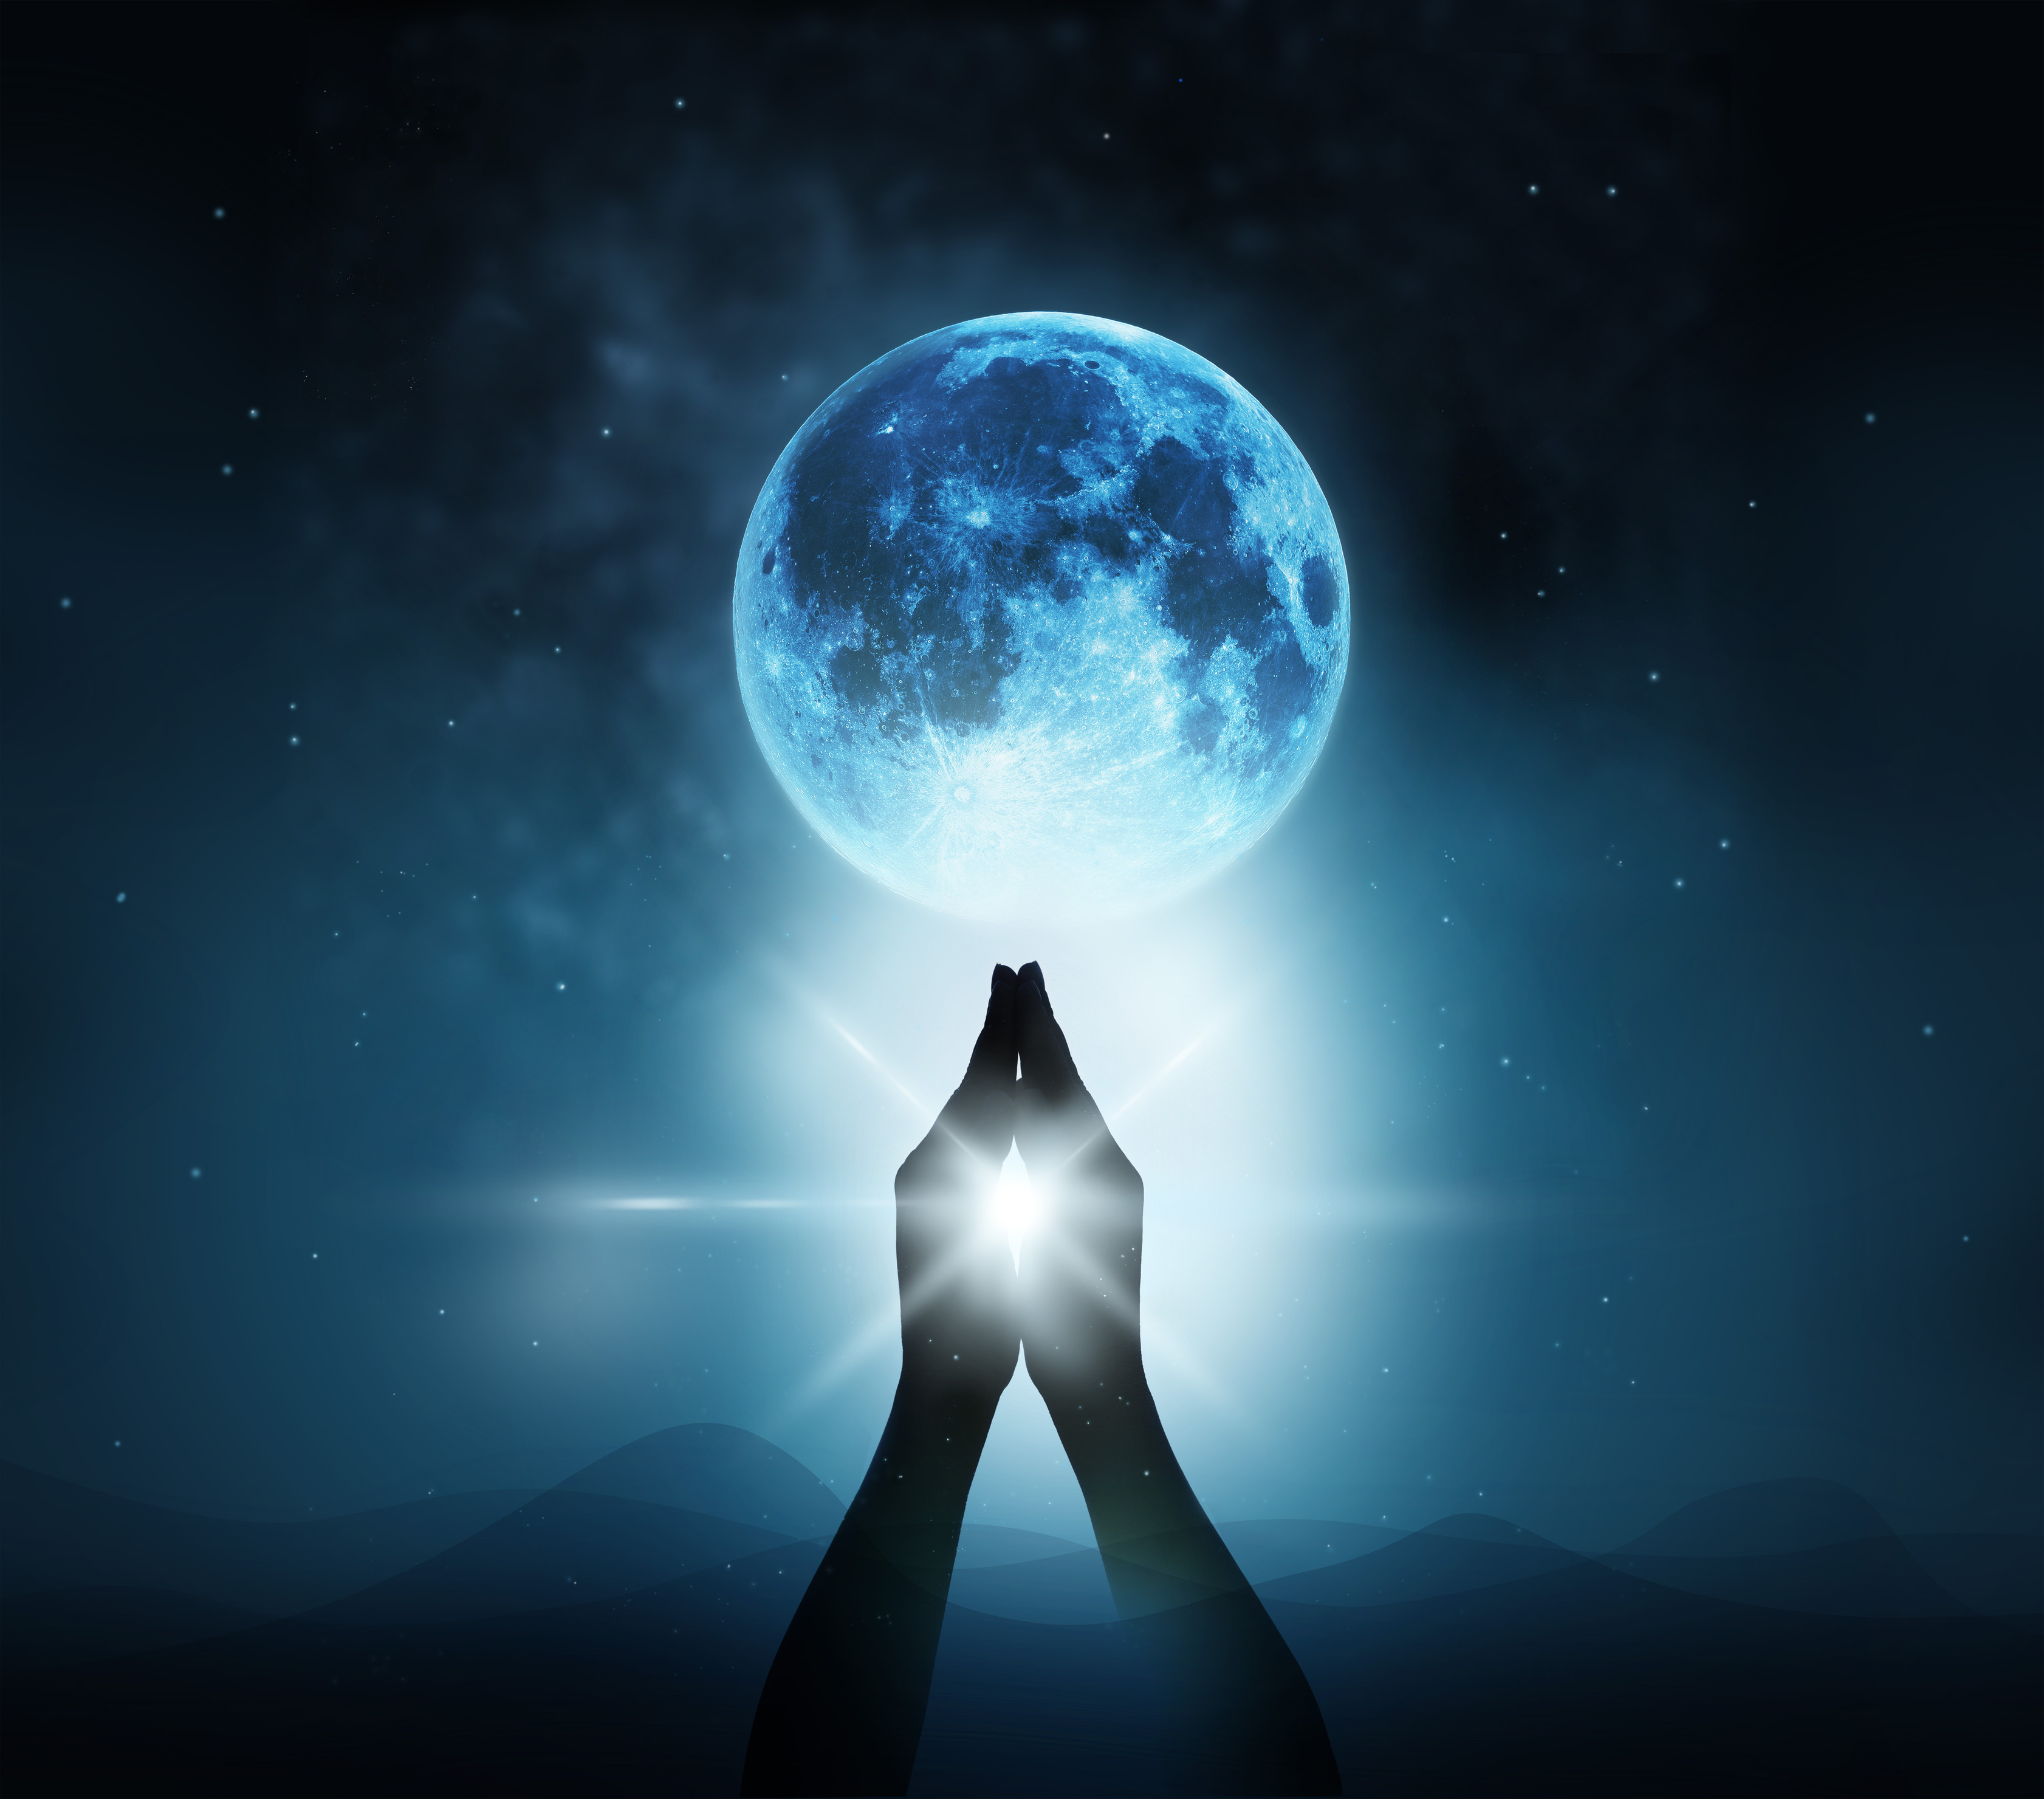 Respect and pray on blue full moon with nature background